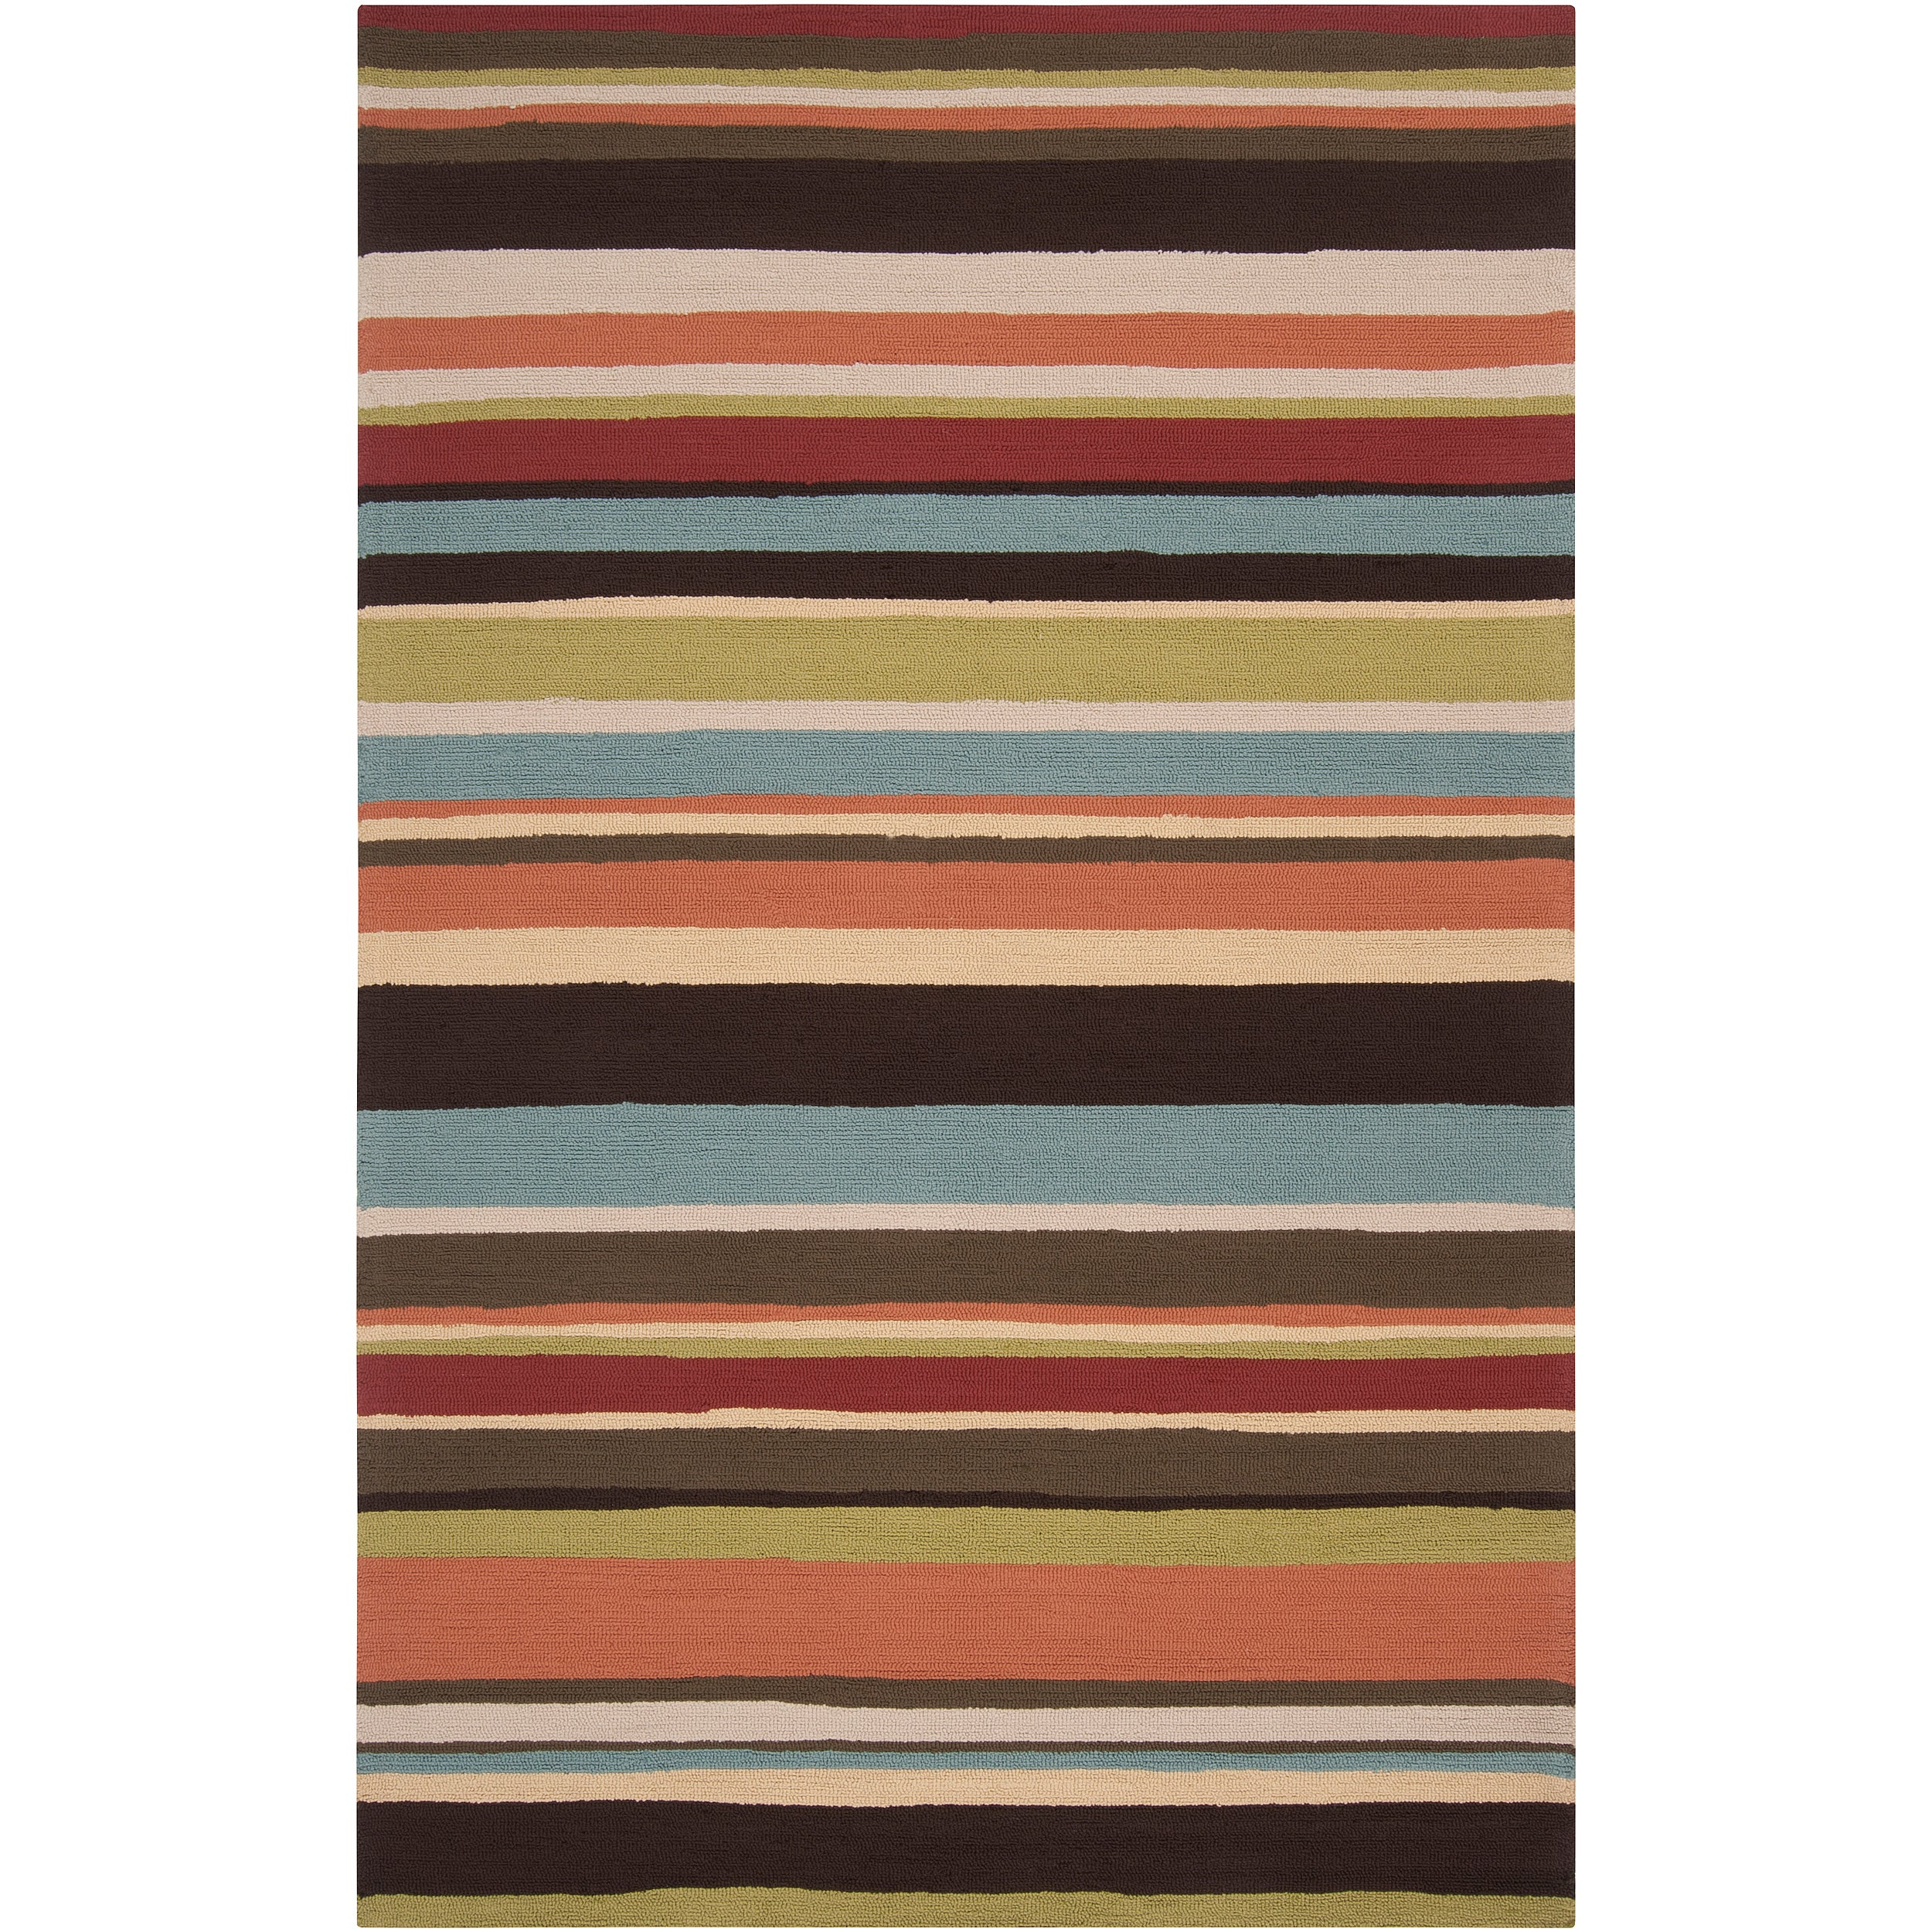 Hand-hooked Red Maren Indoor/Outdoor Stripe Area Rug (8' x 10')